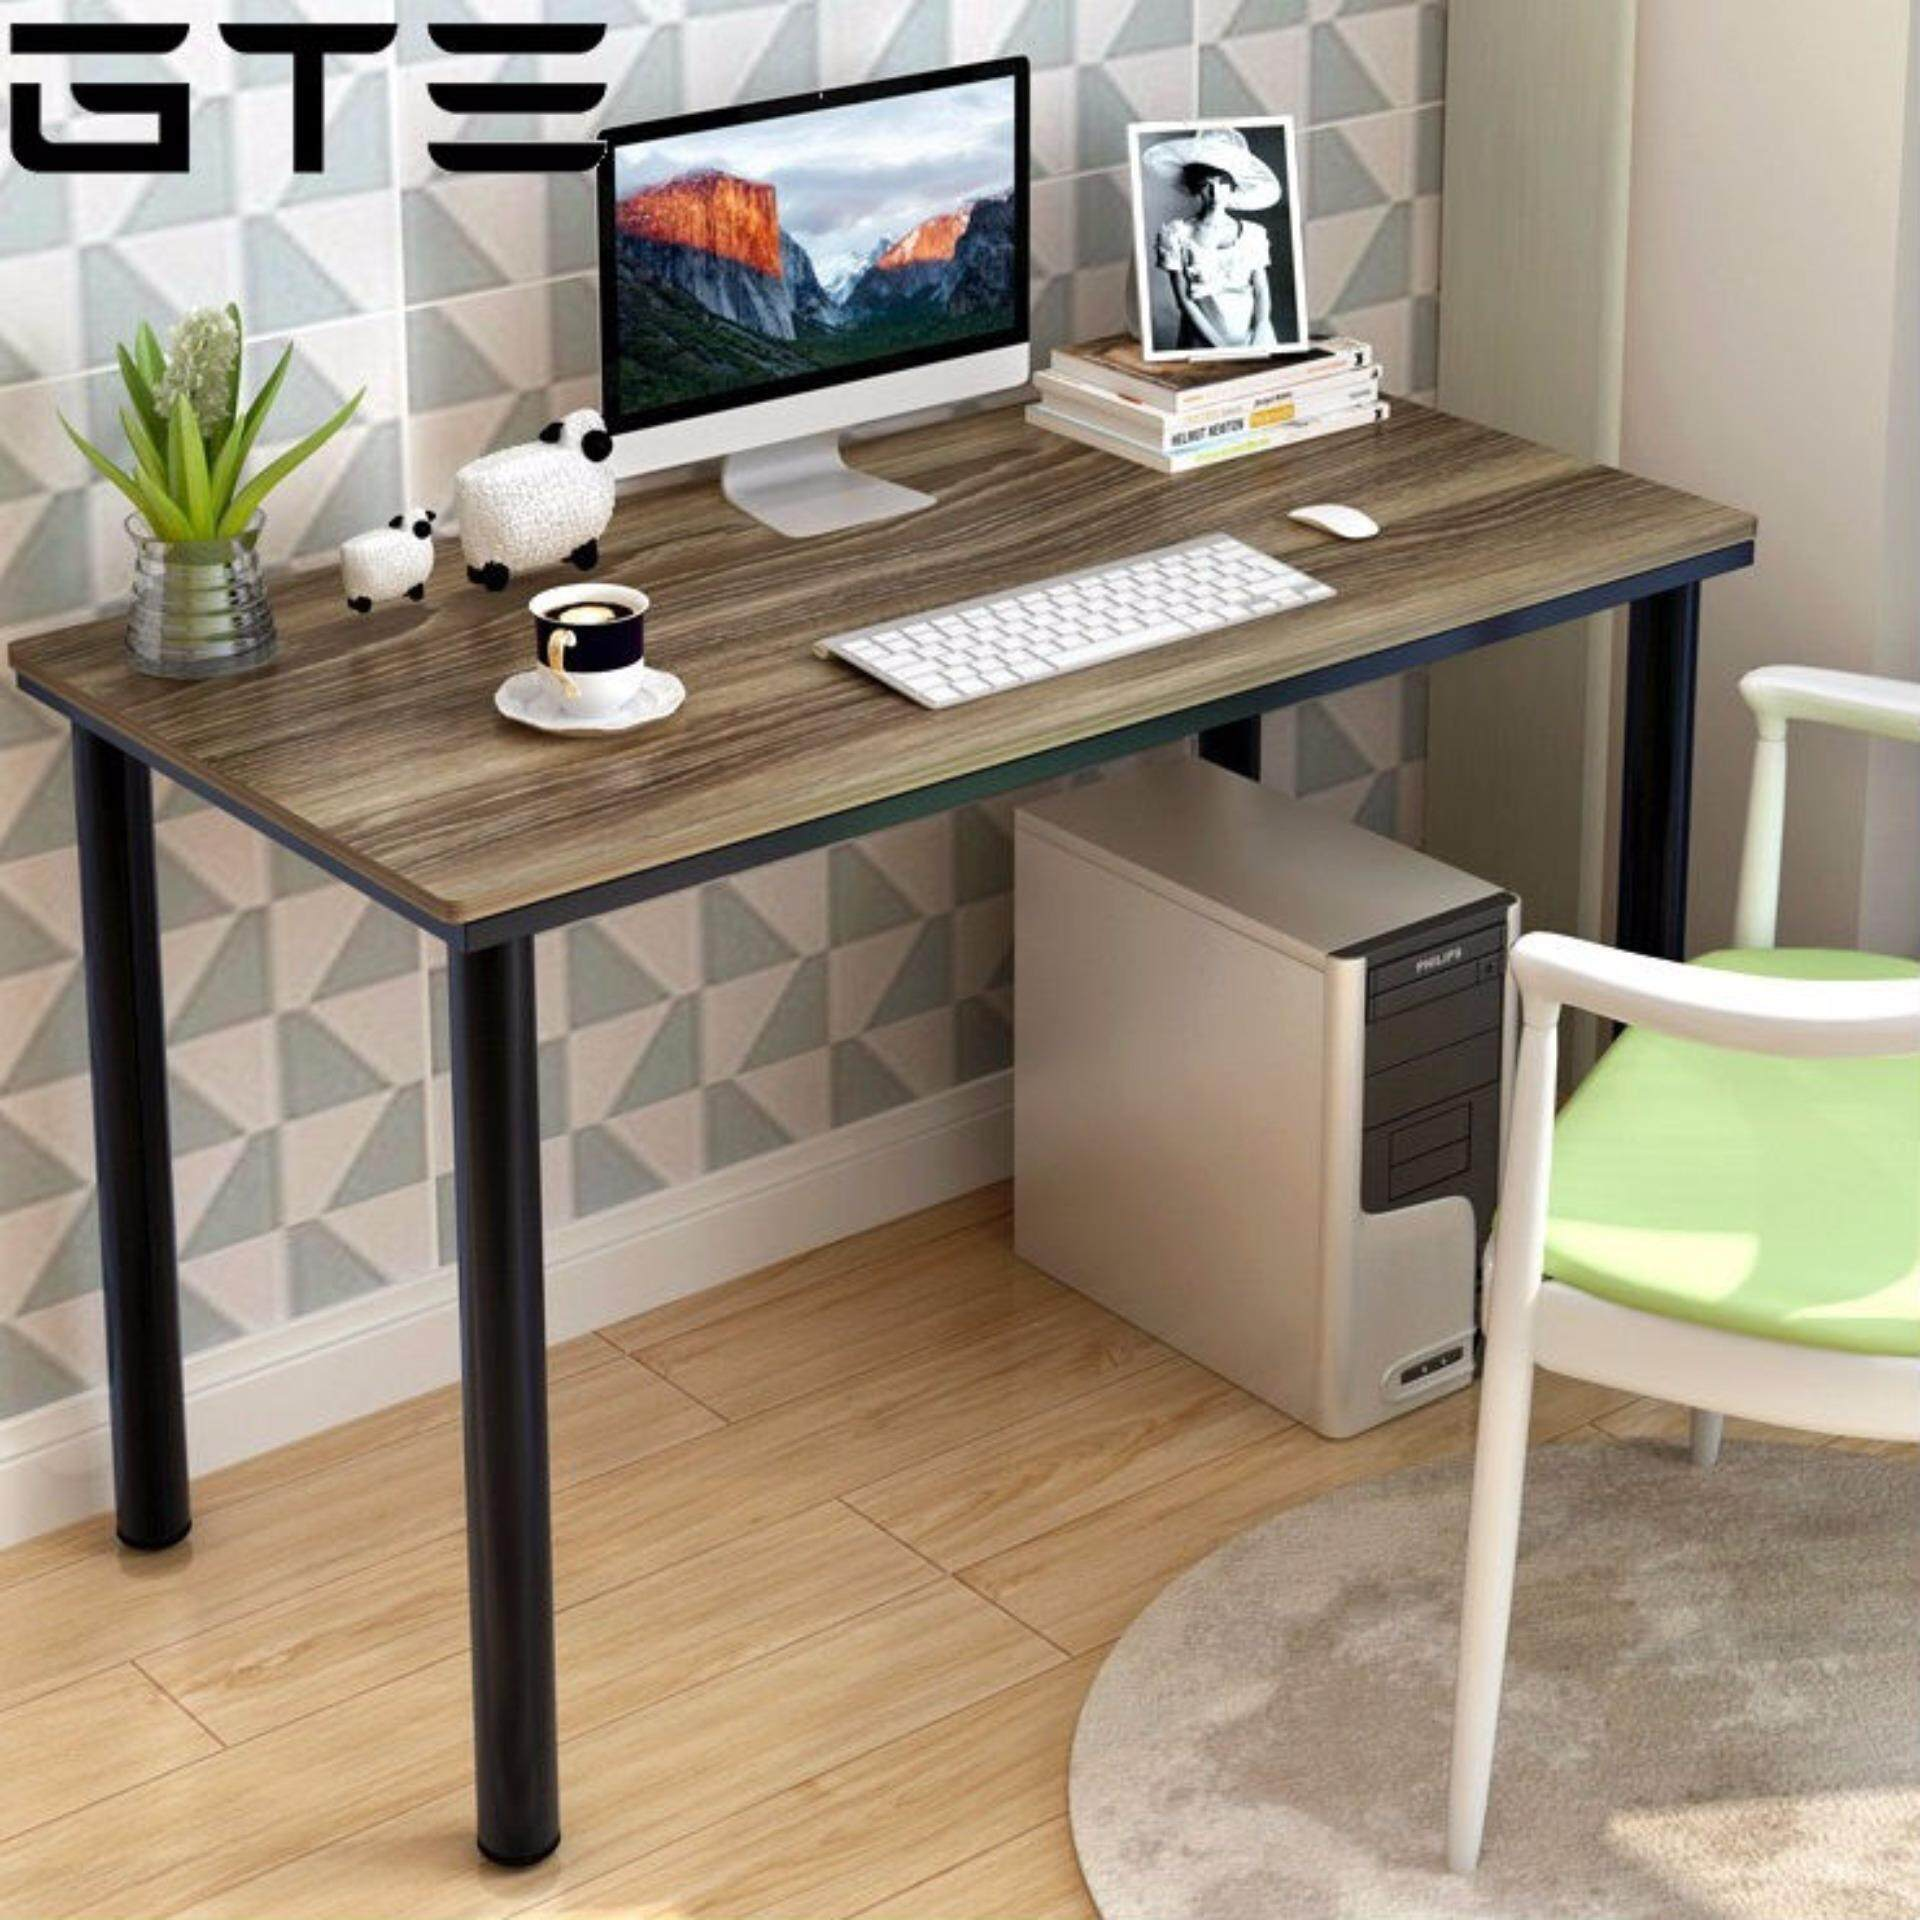 Gte 120b 1 Simple Modern Wooden Desktop Laptop Desk Home Office Table Study 120cm X